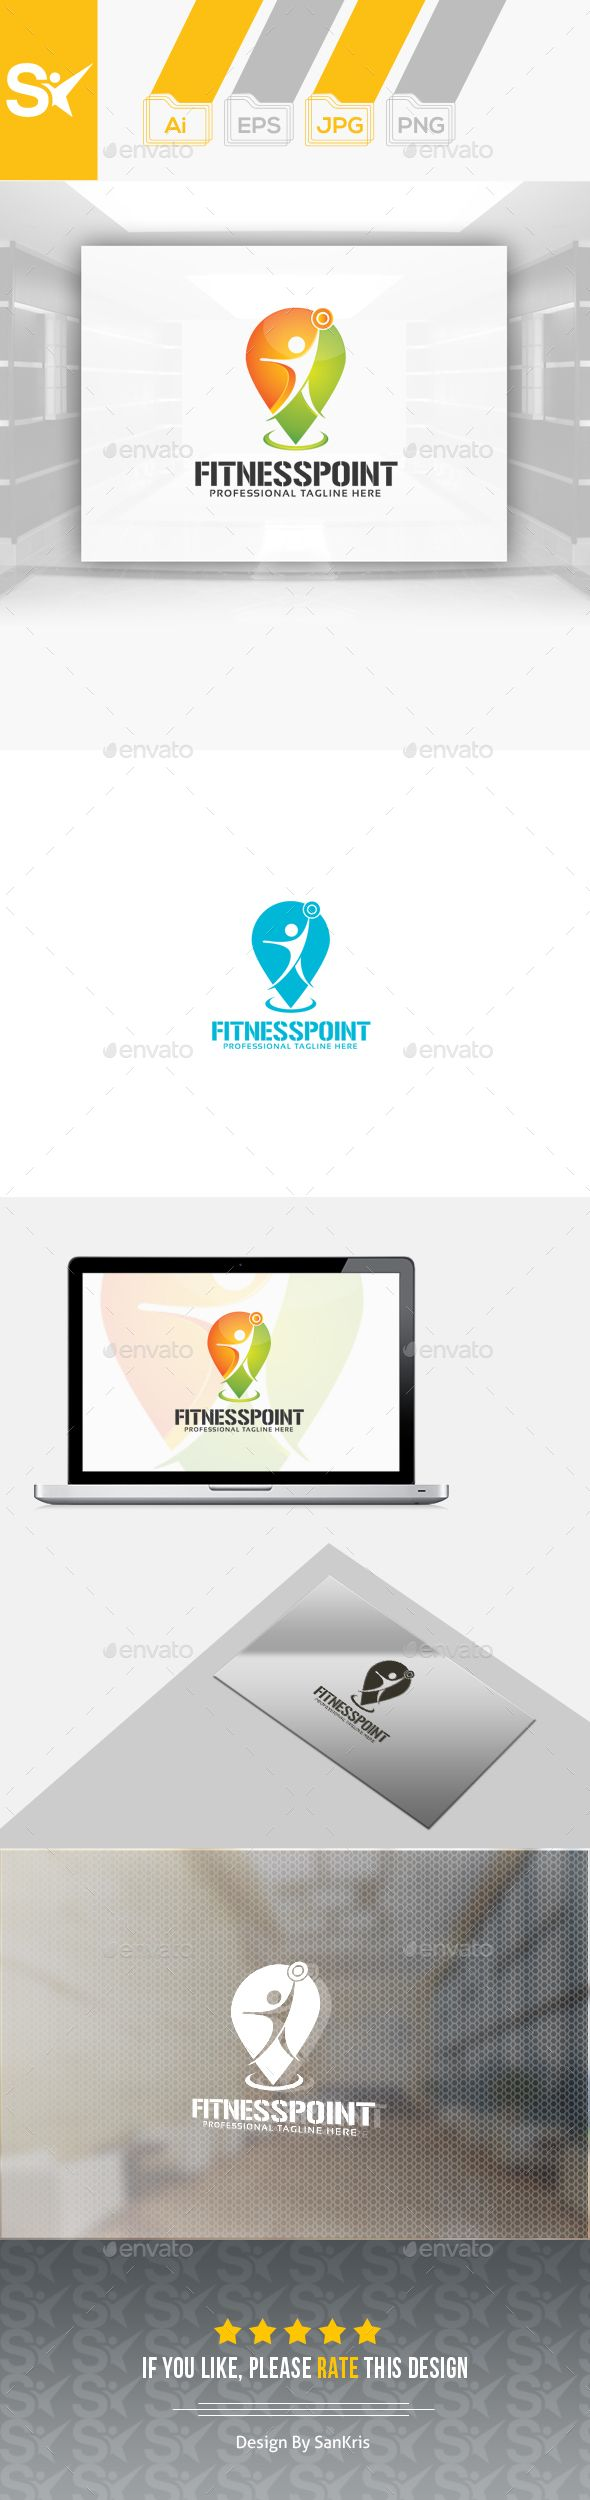 Fitness Point Logo — Transparent PNG #health #healthy • Available here → https://graphicriver.net/item/fitness-point-logo/14576751?ref=pxcr